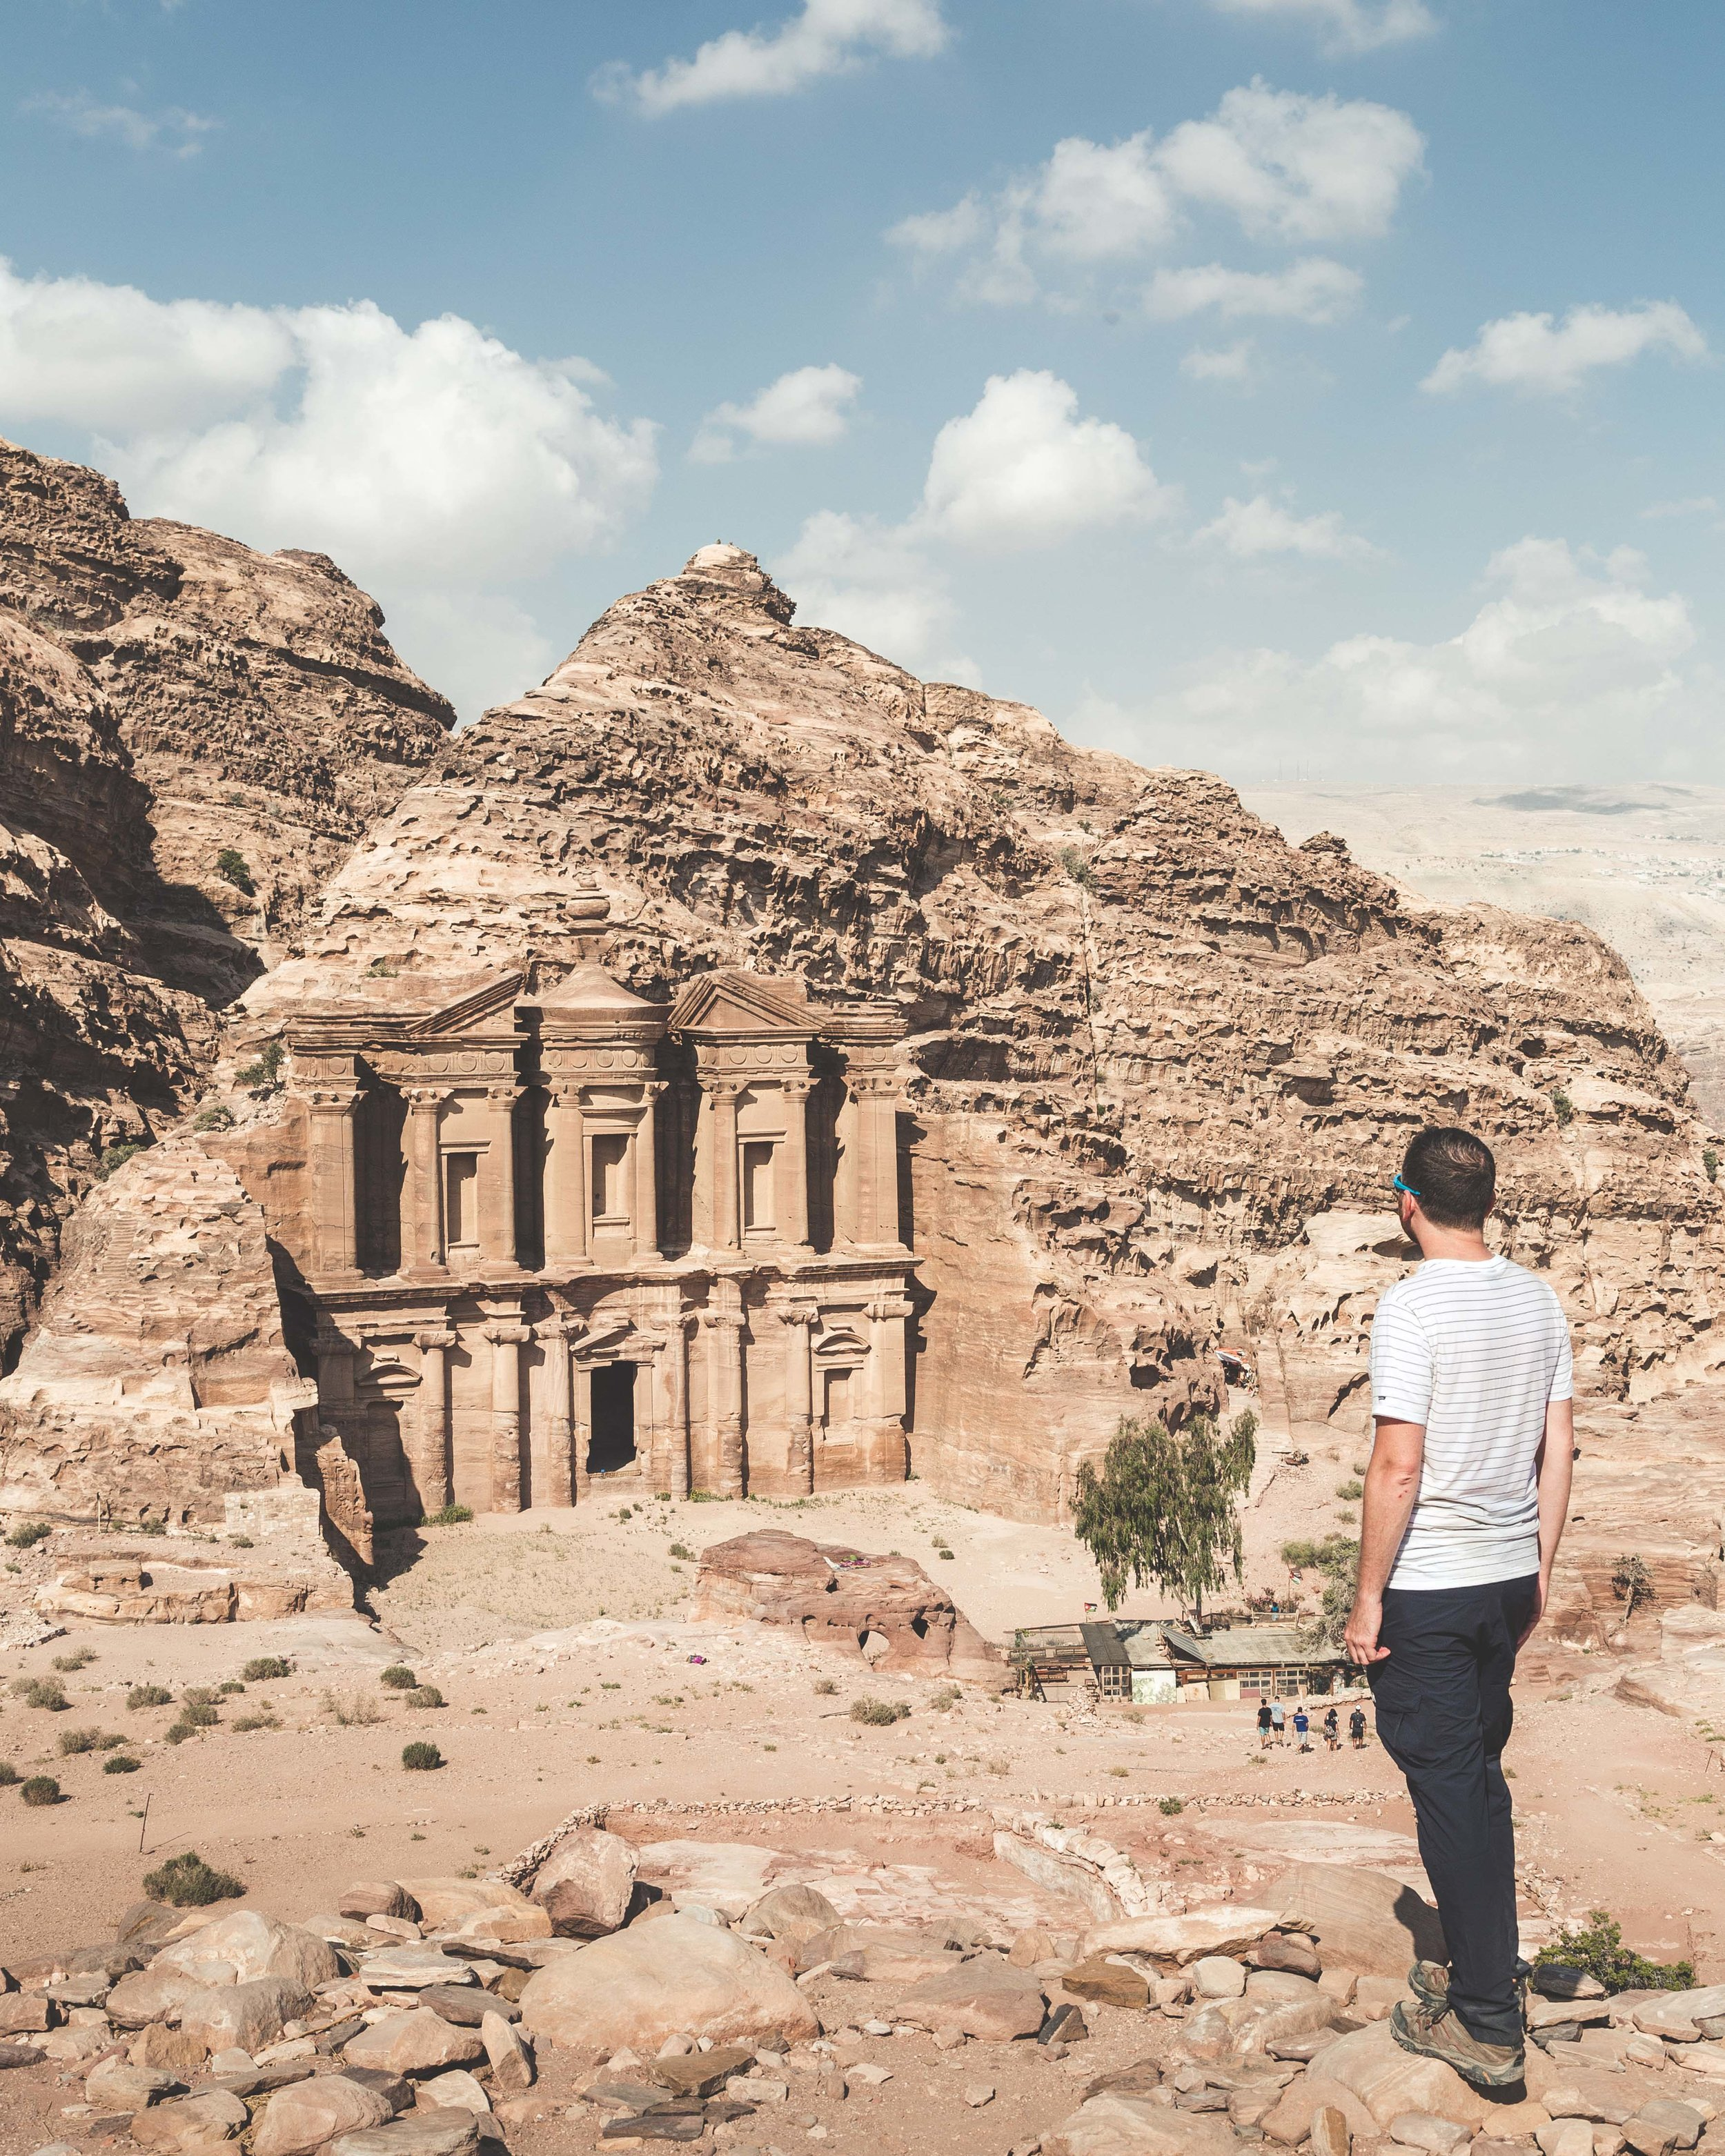 Instagrammable spots in Jordan - The Monastery, Petra